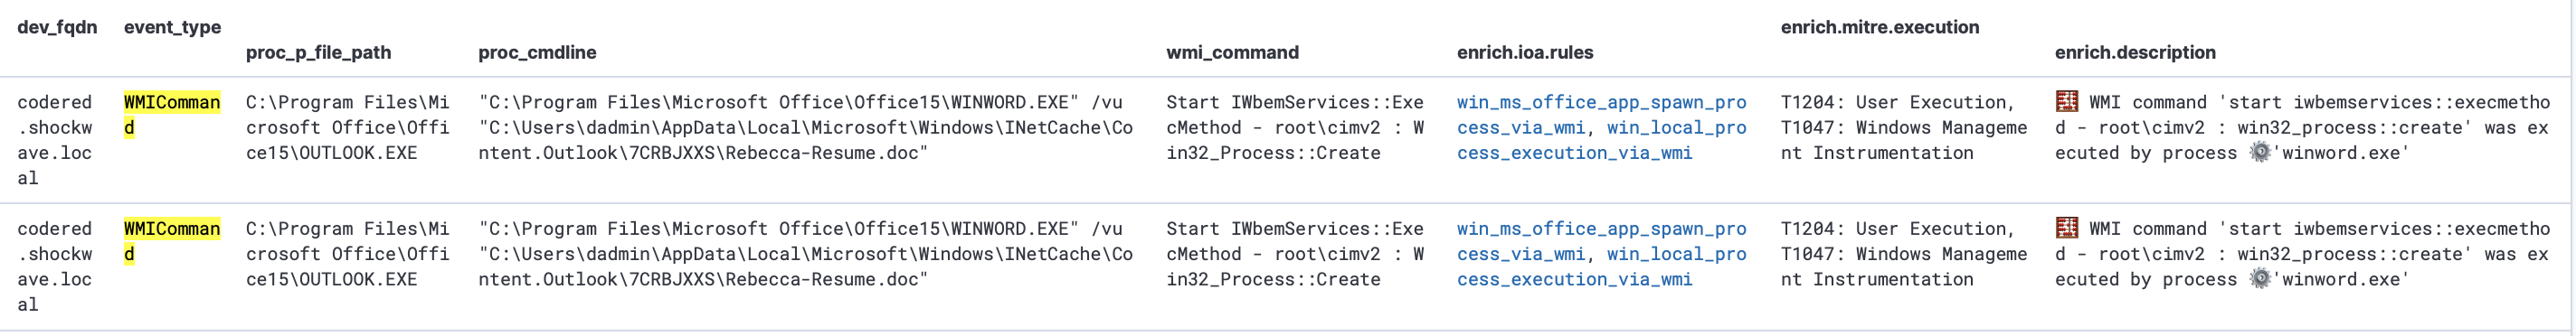 Fig. 18. Detection (using EDR events) of attempts to spawn process by MS Office applications through WMI